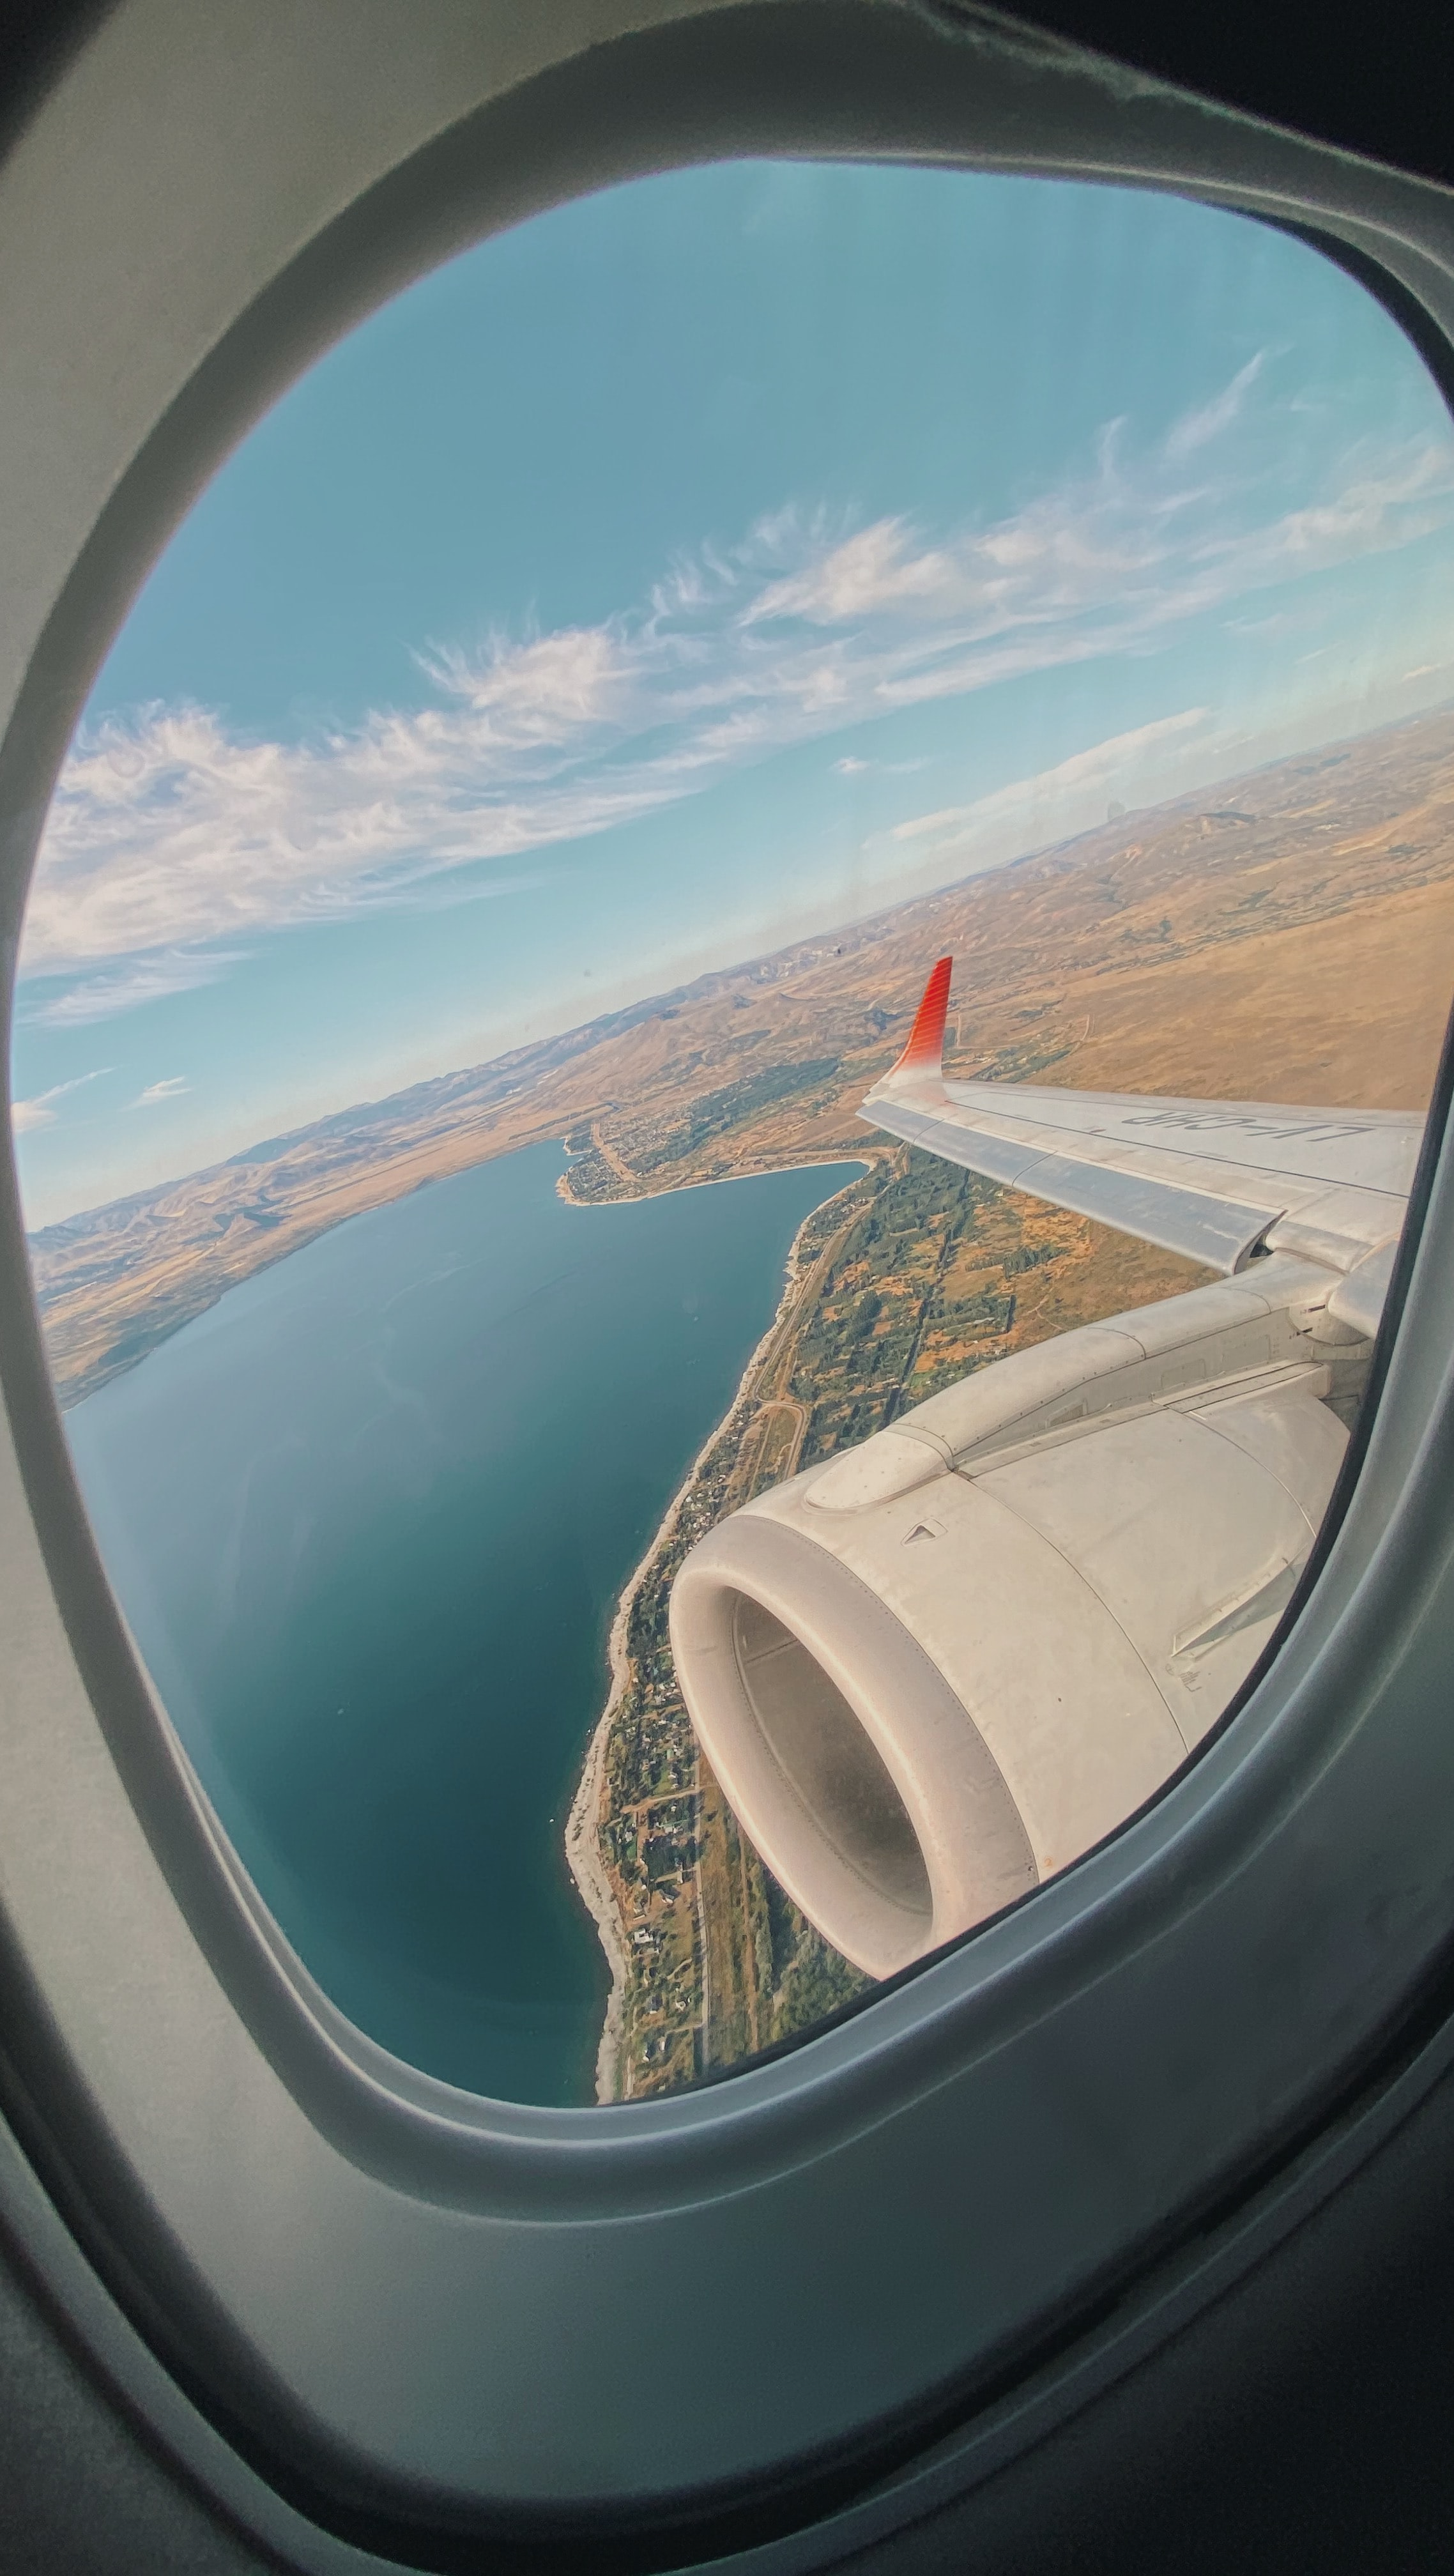 See Views from the window of an airplane